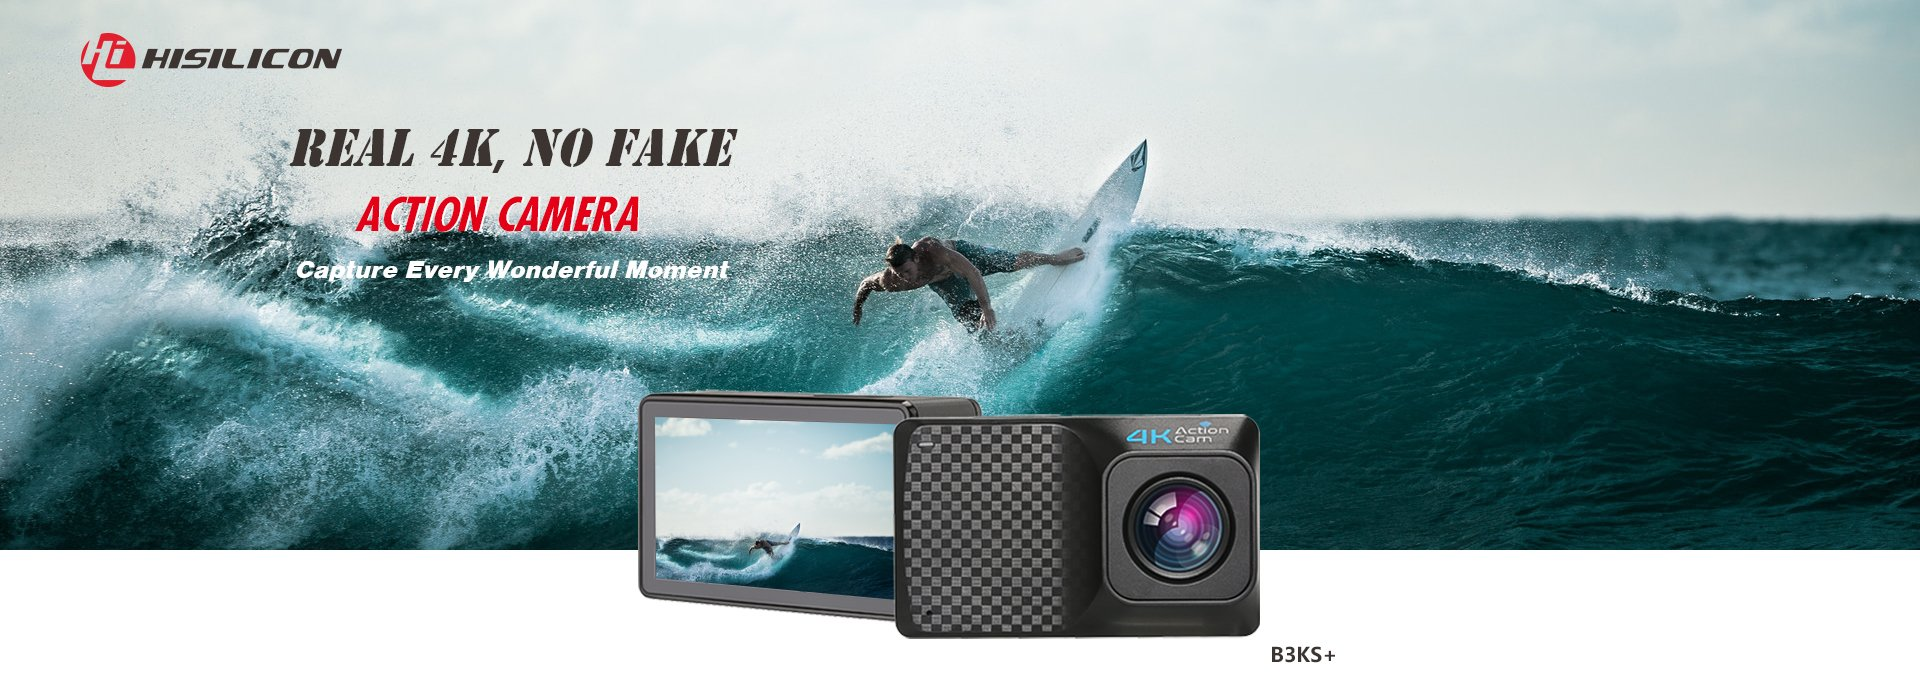 B3KS+ HiSilicon Hi3559 Action Camera